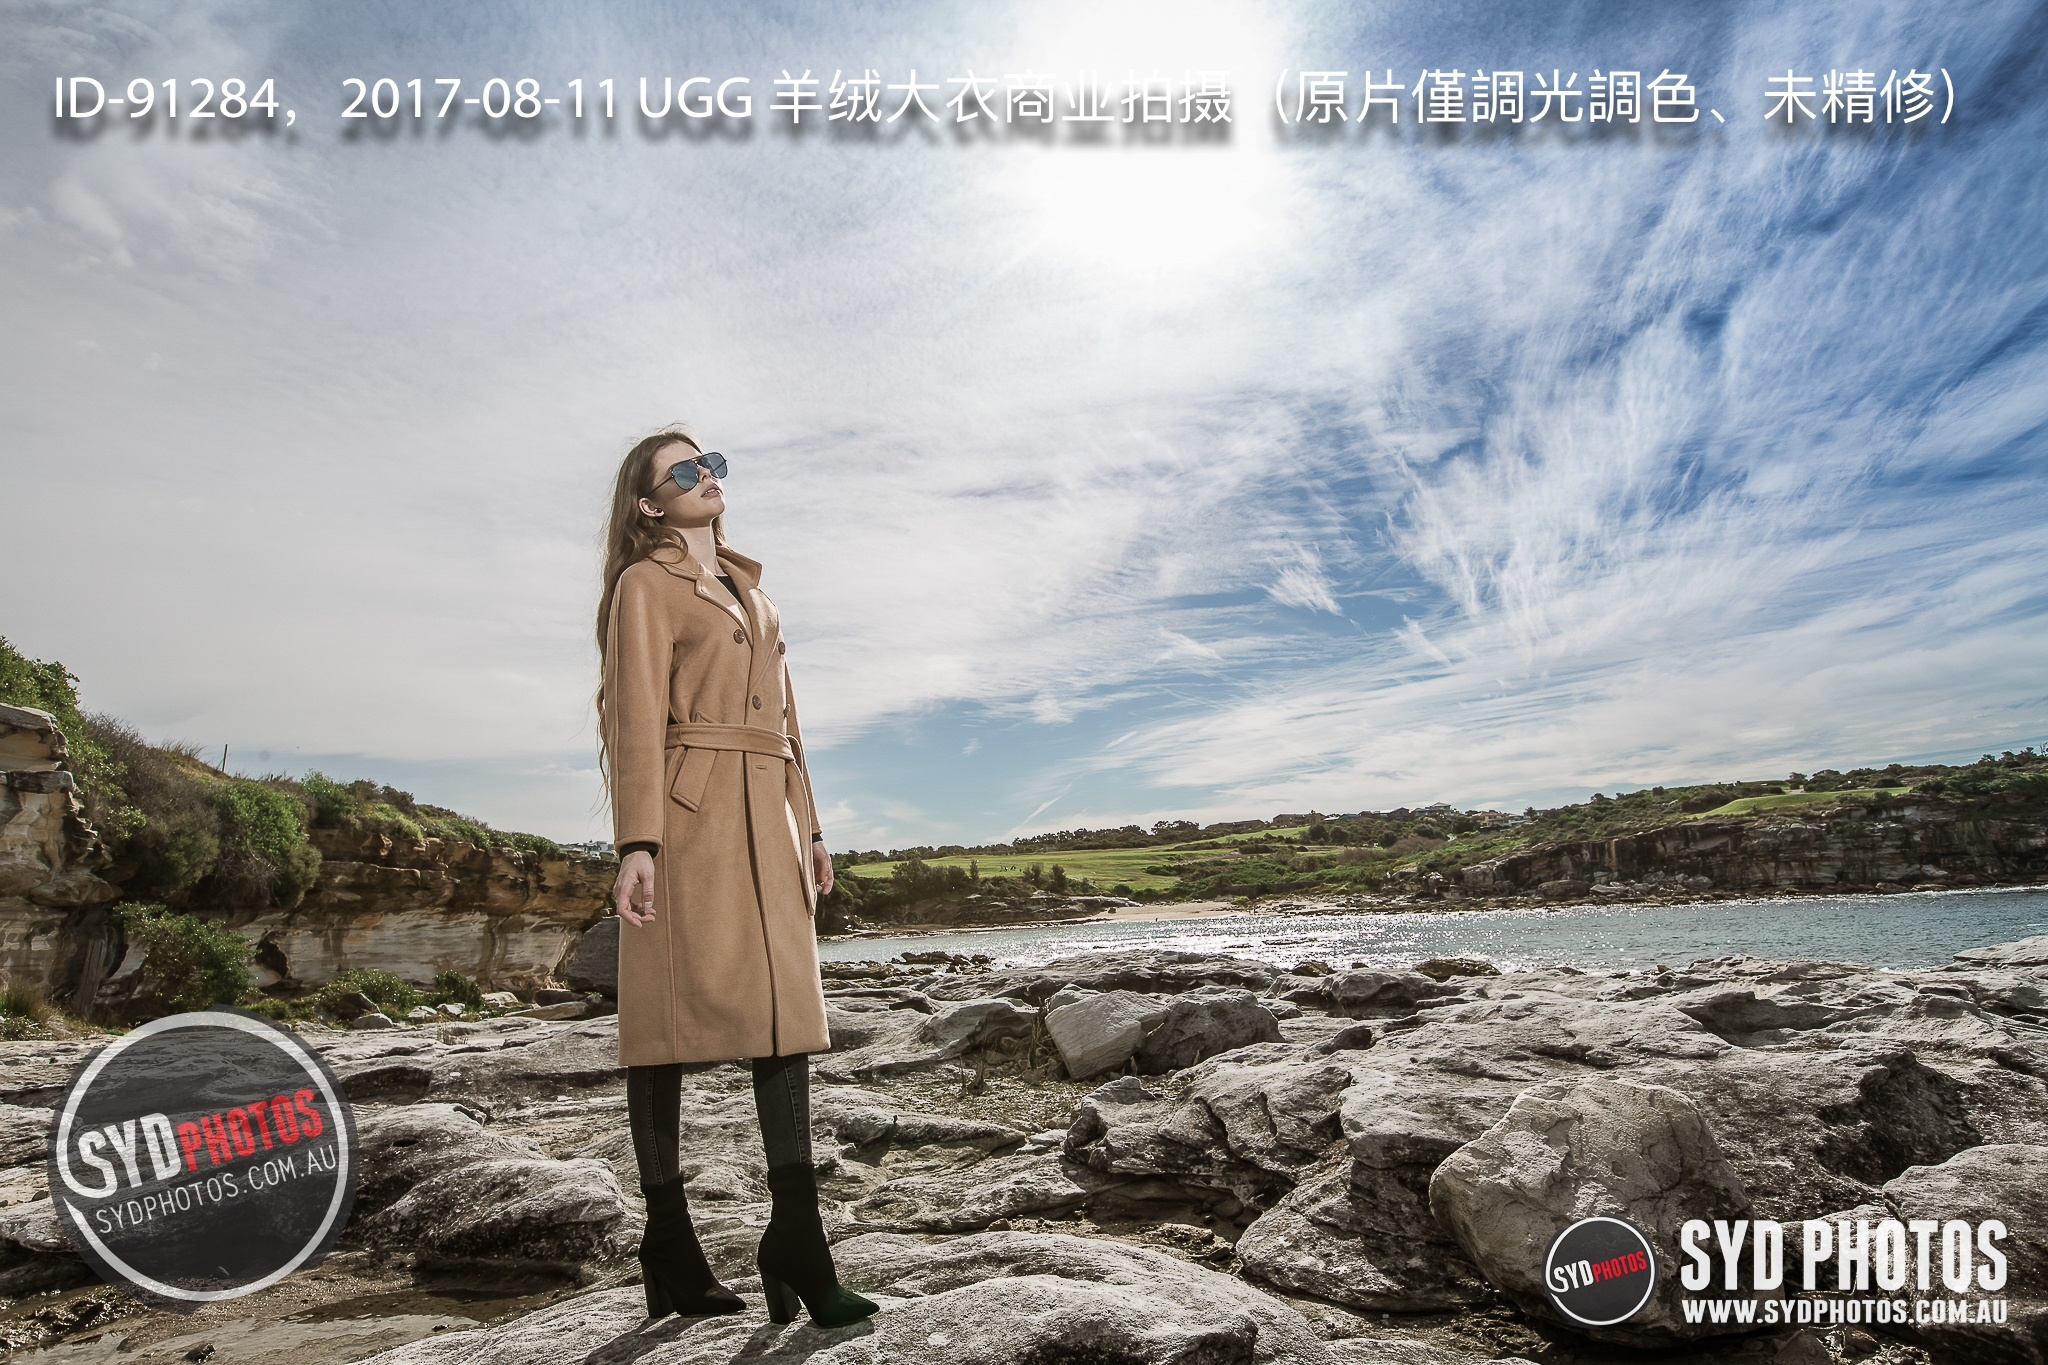 ID-91284-20170811-UGG1.1-1.JPG, By Photographer Sydphotos.Commercial, Created on 27 Aug 2017, SYDPHOTOS Photography all rights reserved.